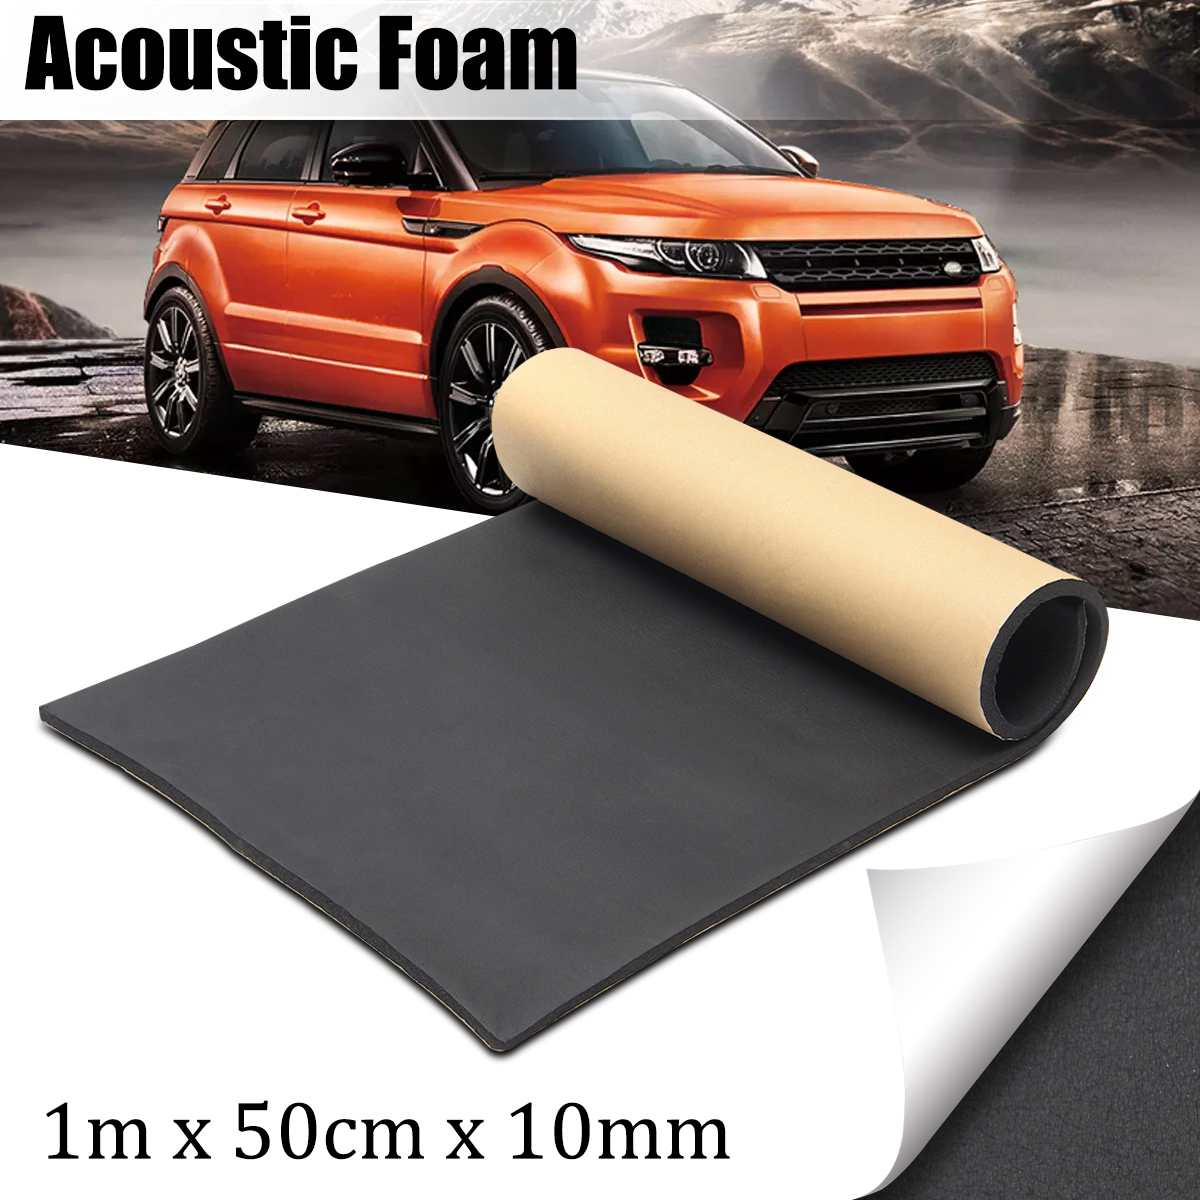 Car Van Sound Proofing Insulation Deadening Closed Cell Foam 30*50cm Auto Interior Exterior Accessories 1m X 50cm X 10mm 10mm